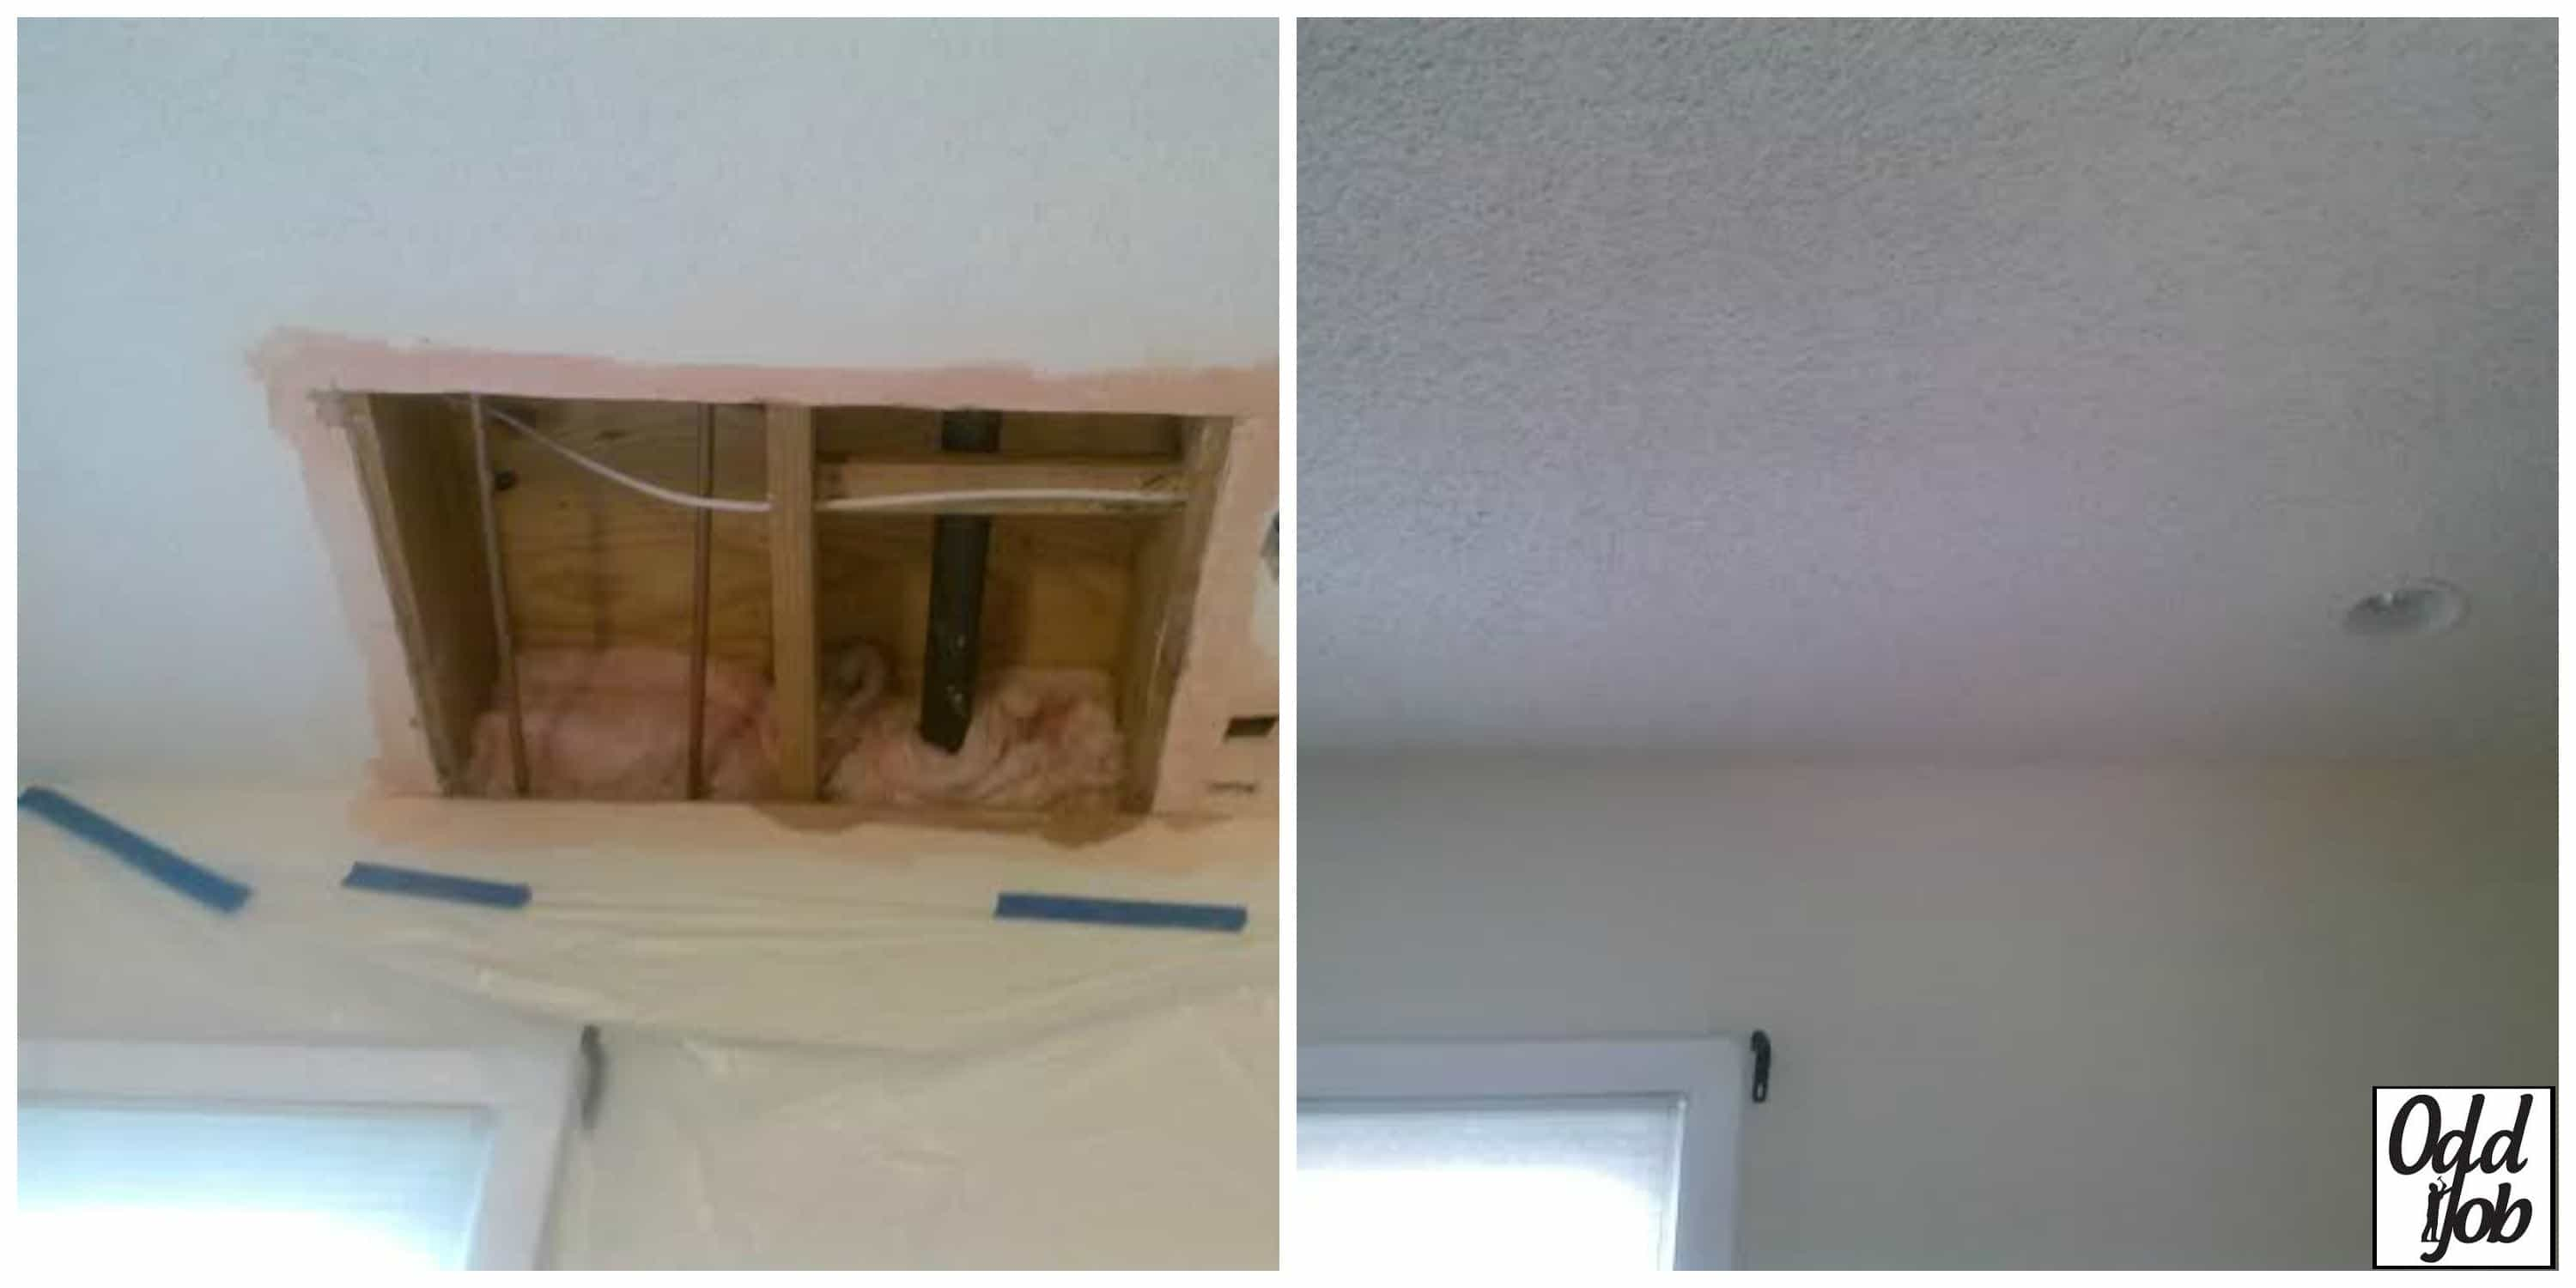 Drywall Repair 6